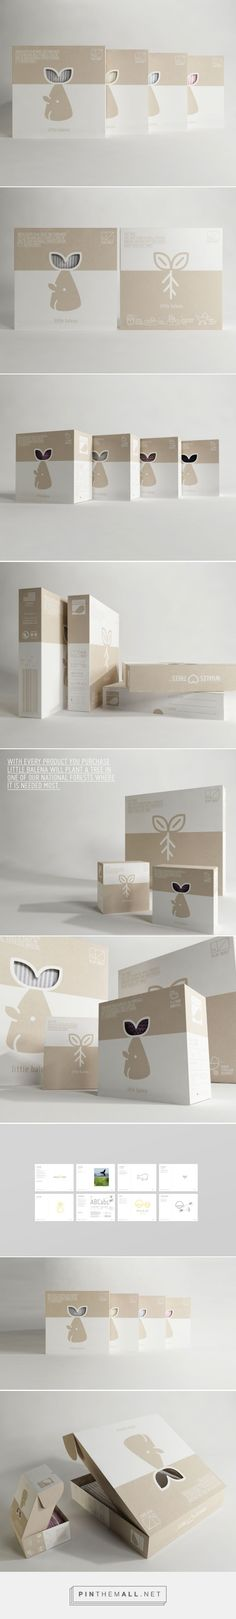 Little Balena - Packaging of the World - Creative Package Design Gallery - http://www.packagingoftheworld.com/2016/02/little-balena.html